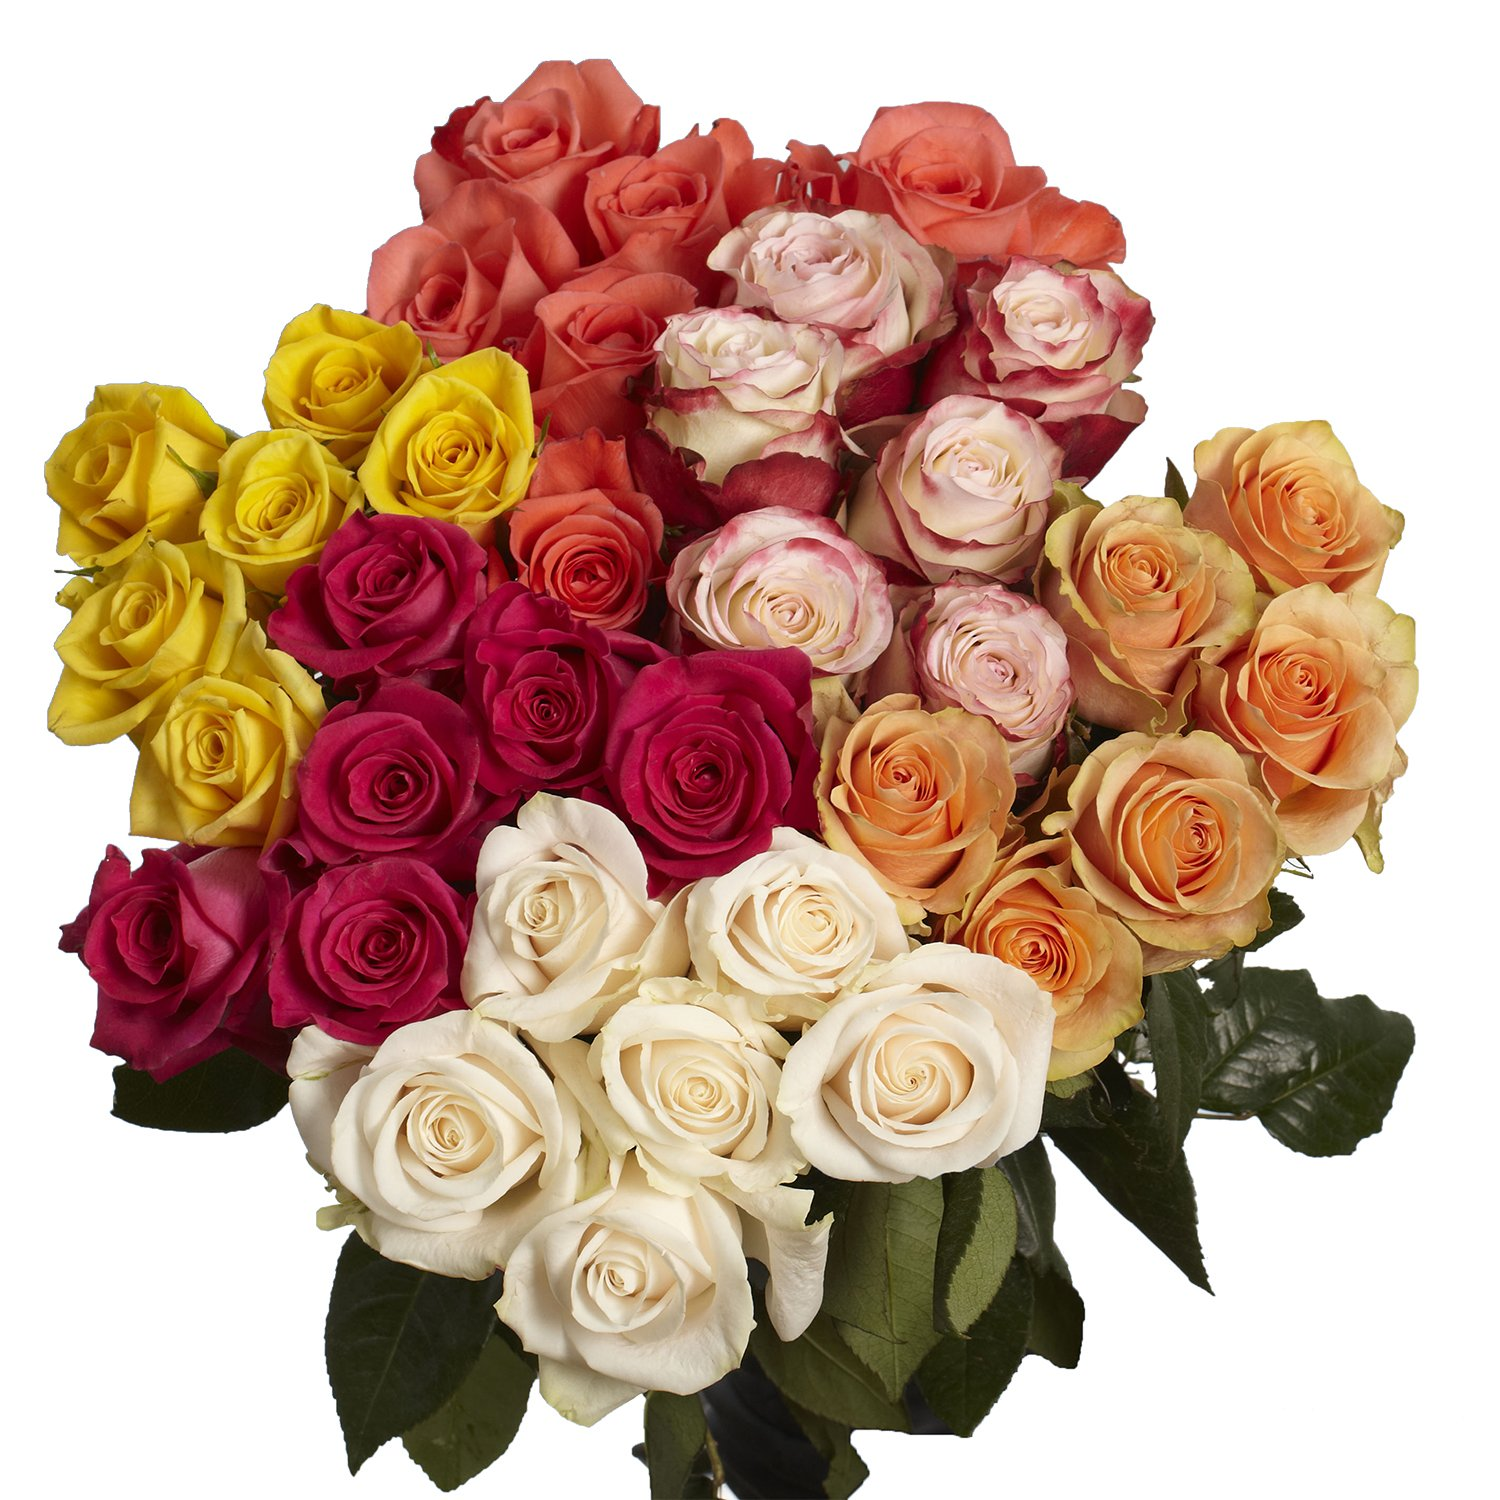 Globalrose 100 Fresh Cut Red Roses Beautiful Flowers Perfect For